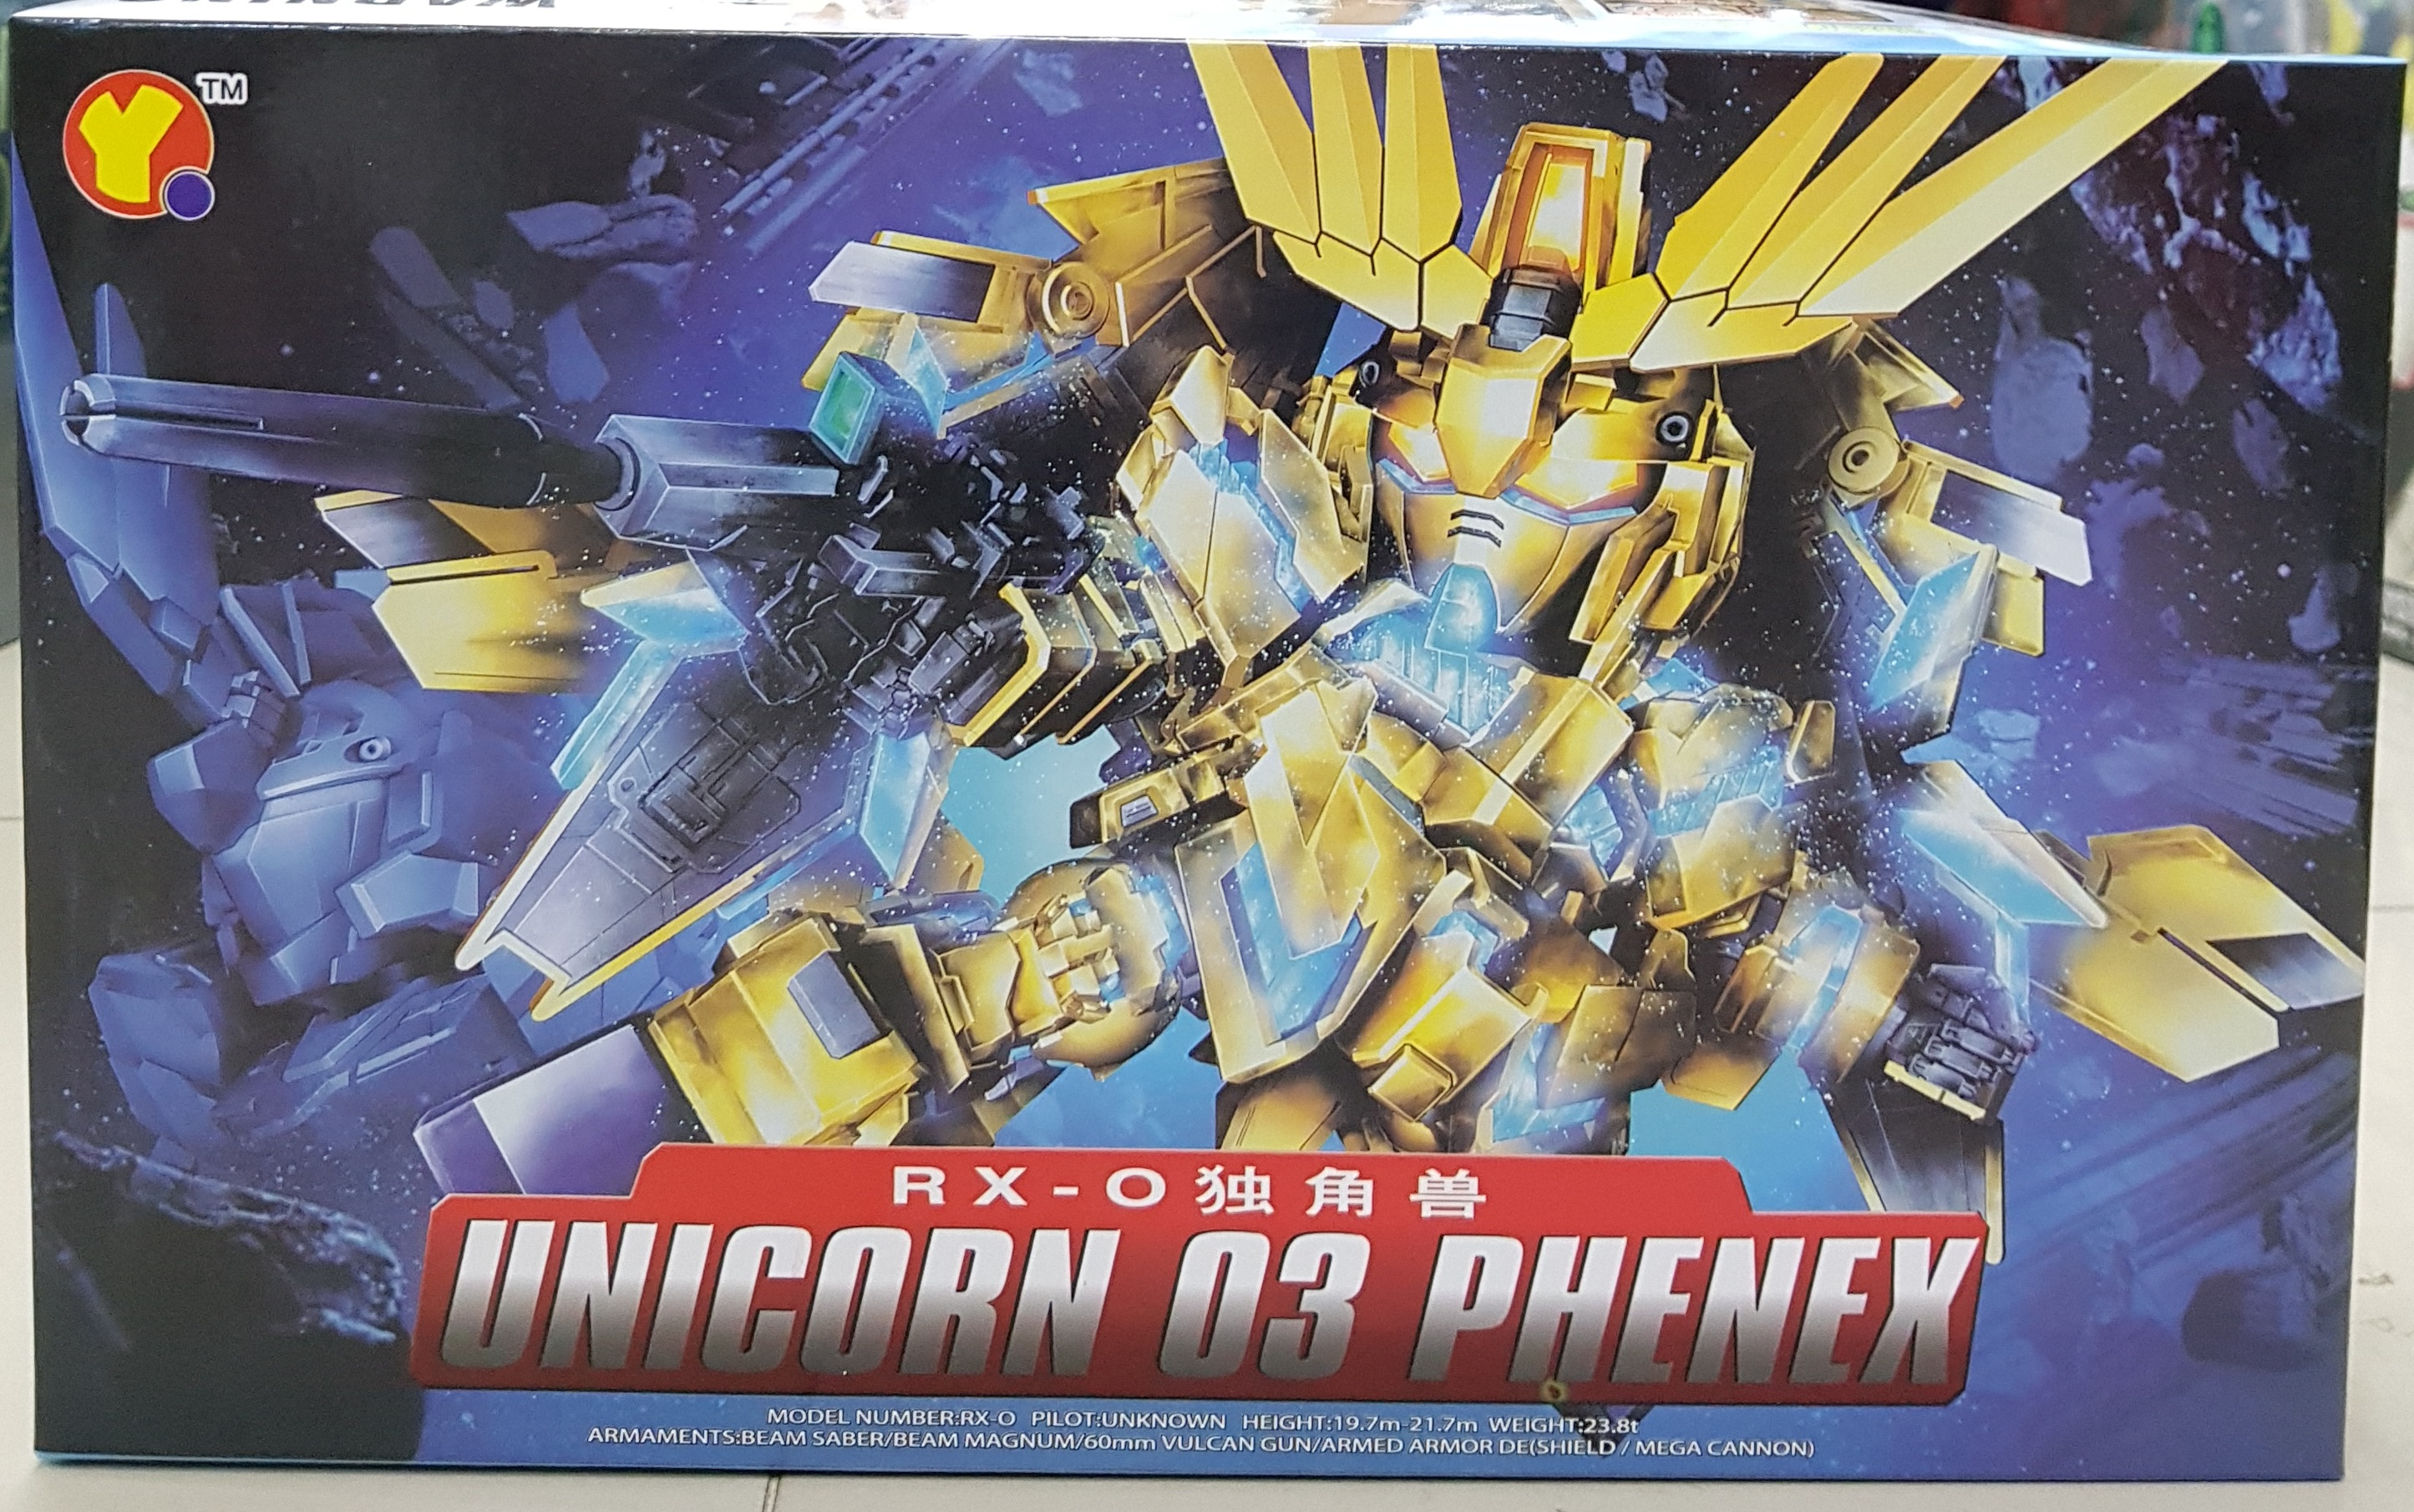 SD UNICORN 03 PHENEX